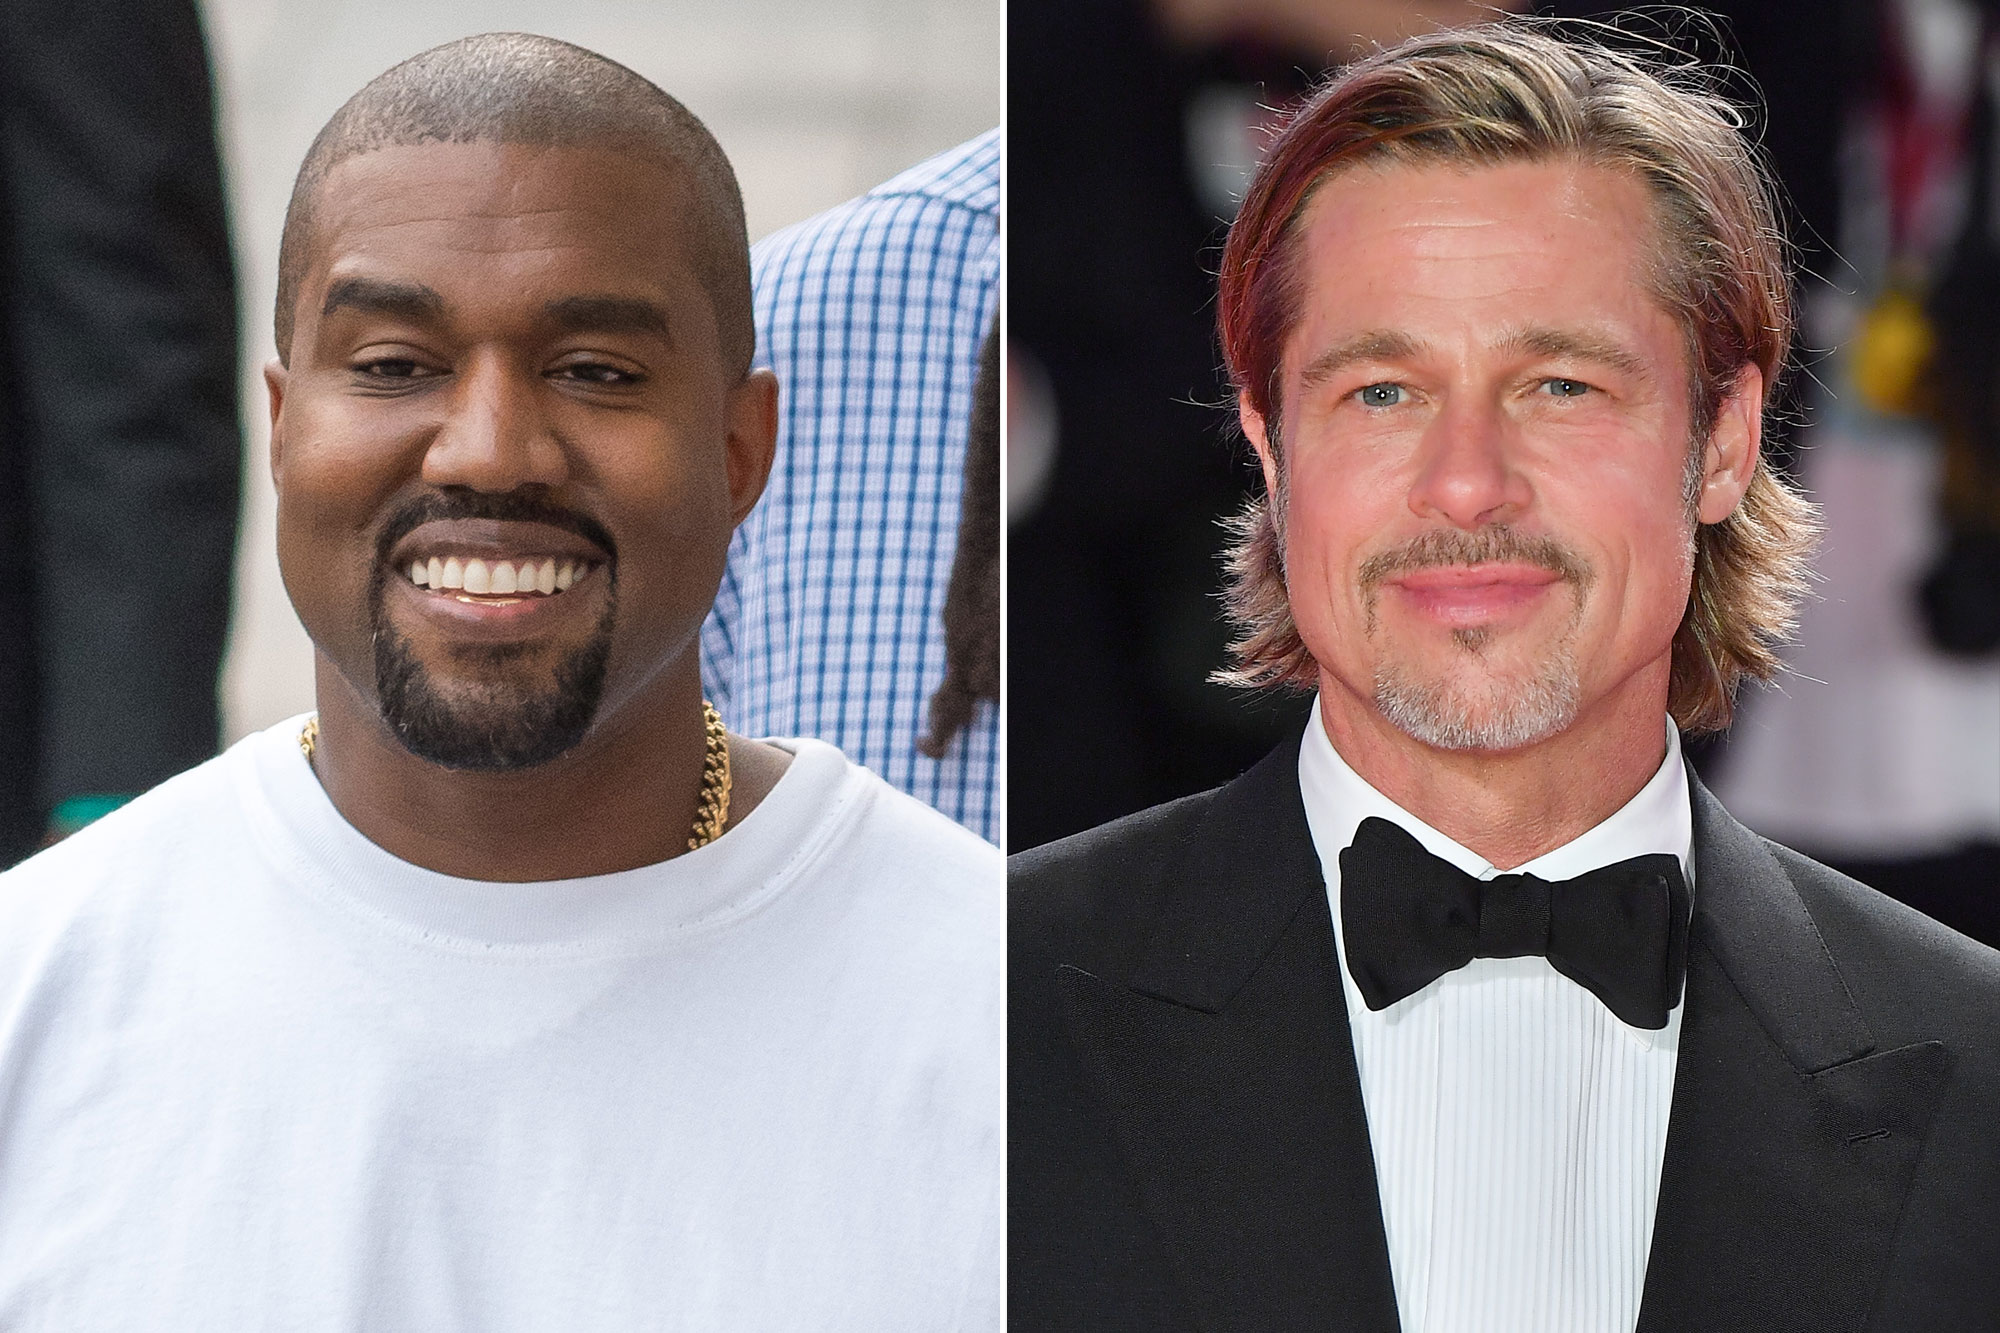 Brad Pitt at Kanye West Sunday church service